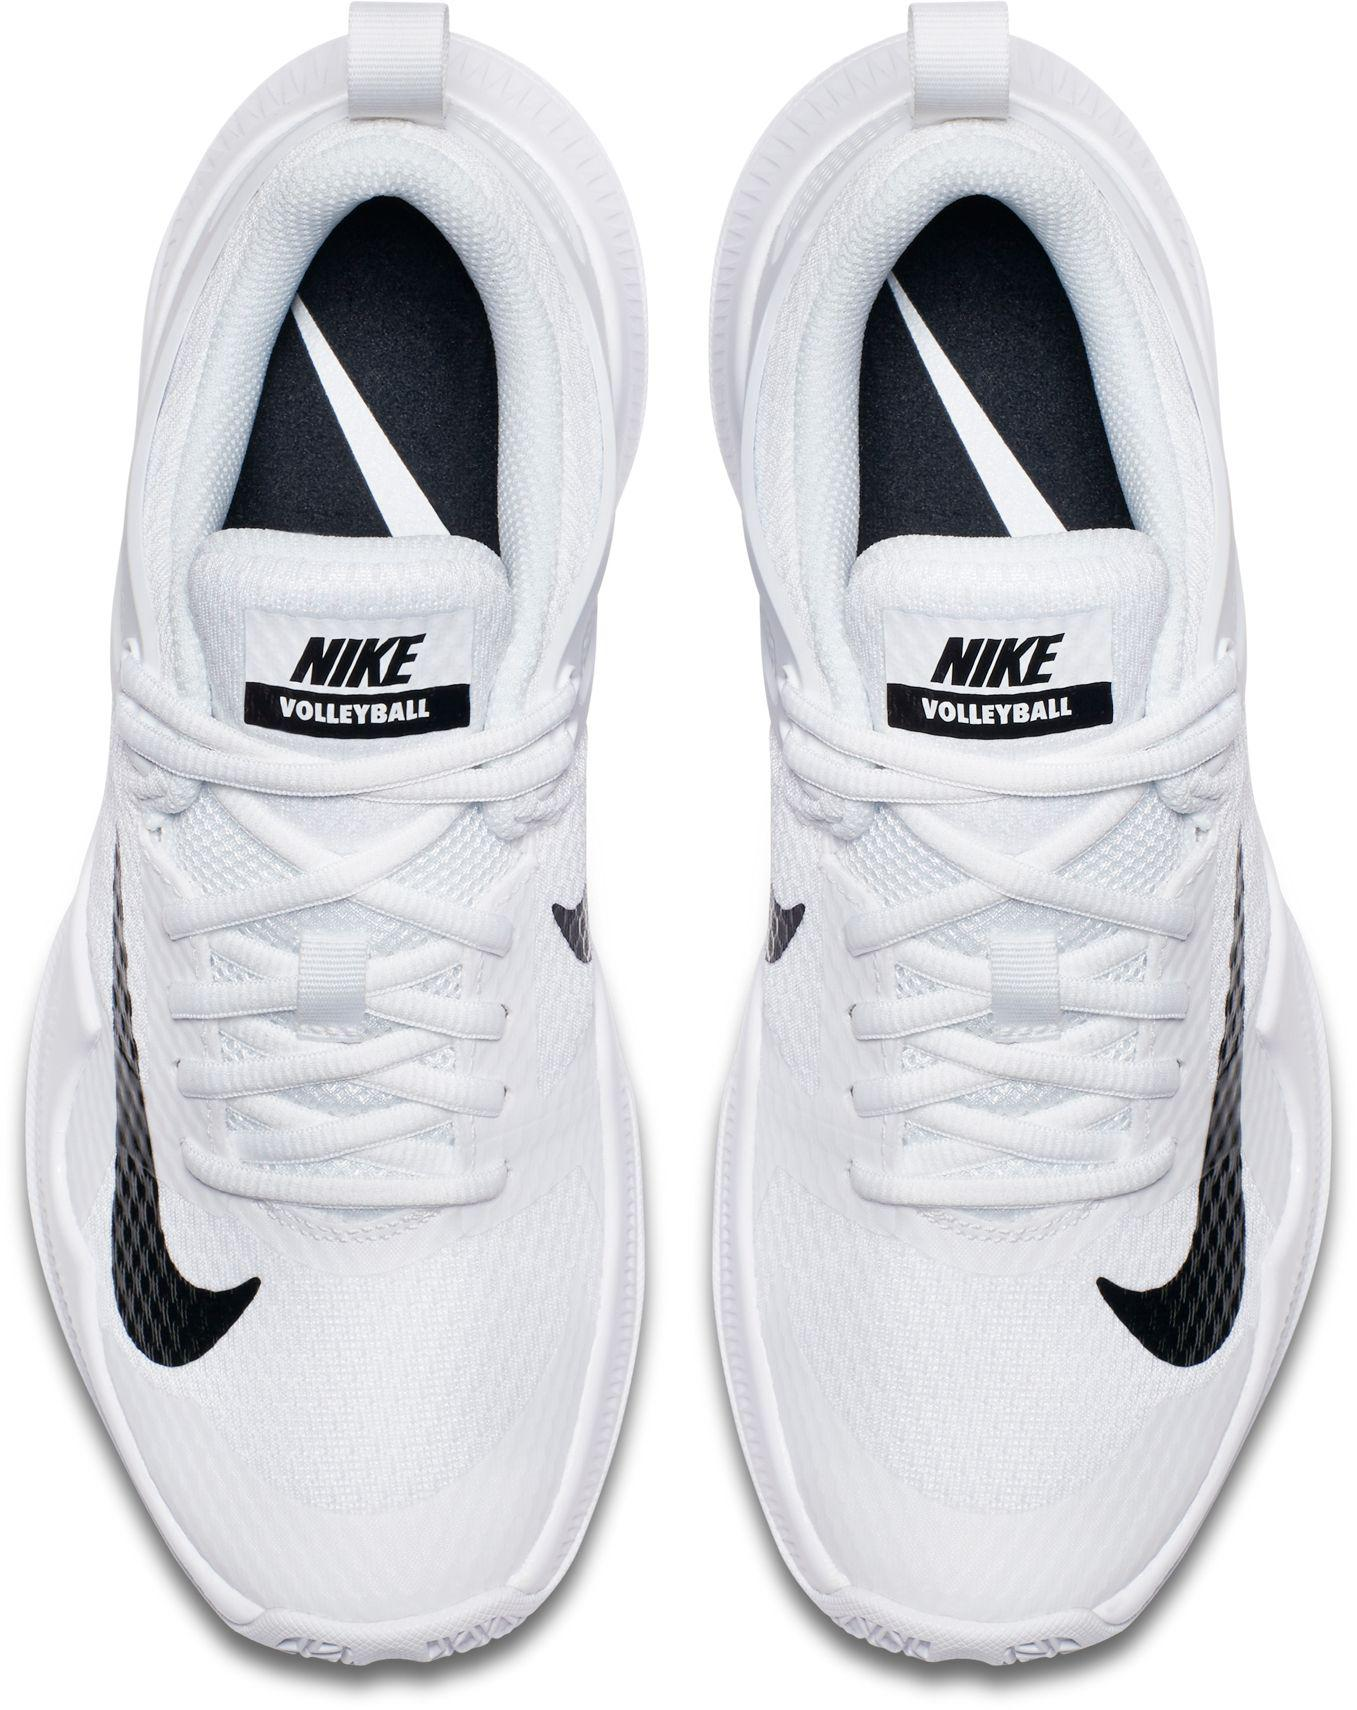 c0c55b6ead48bf Lyst - Nike Air Zoom Hyperace Volleyball Shoes in White